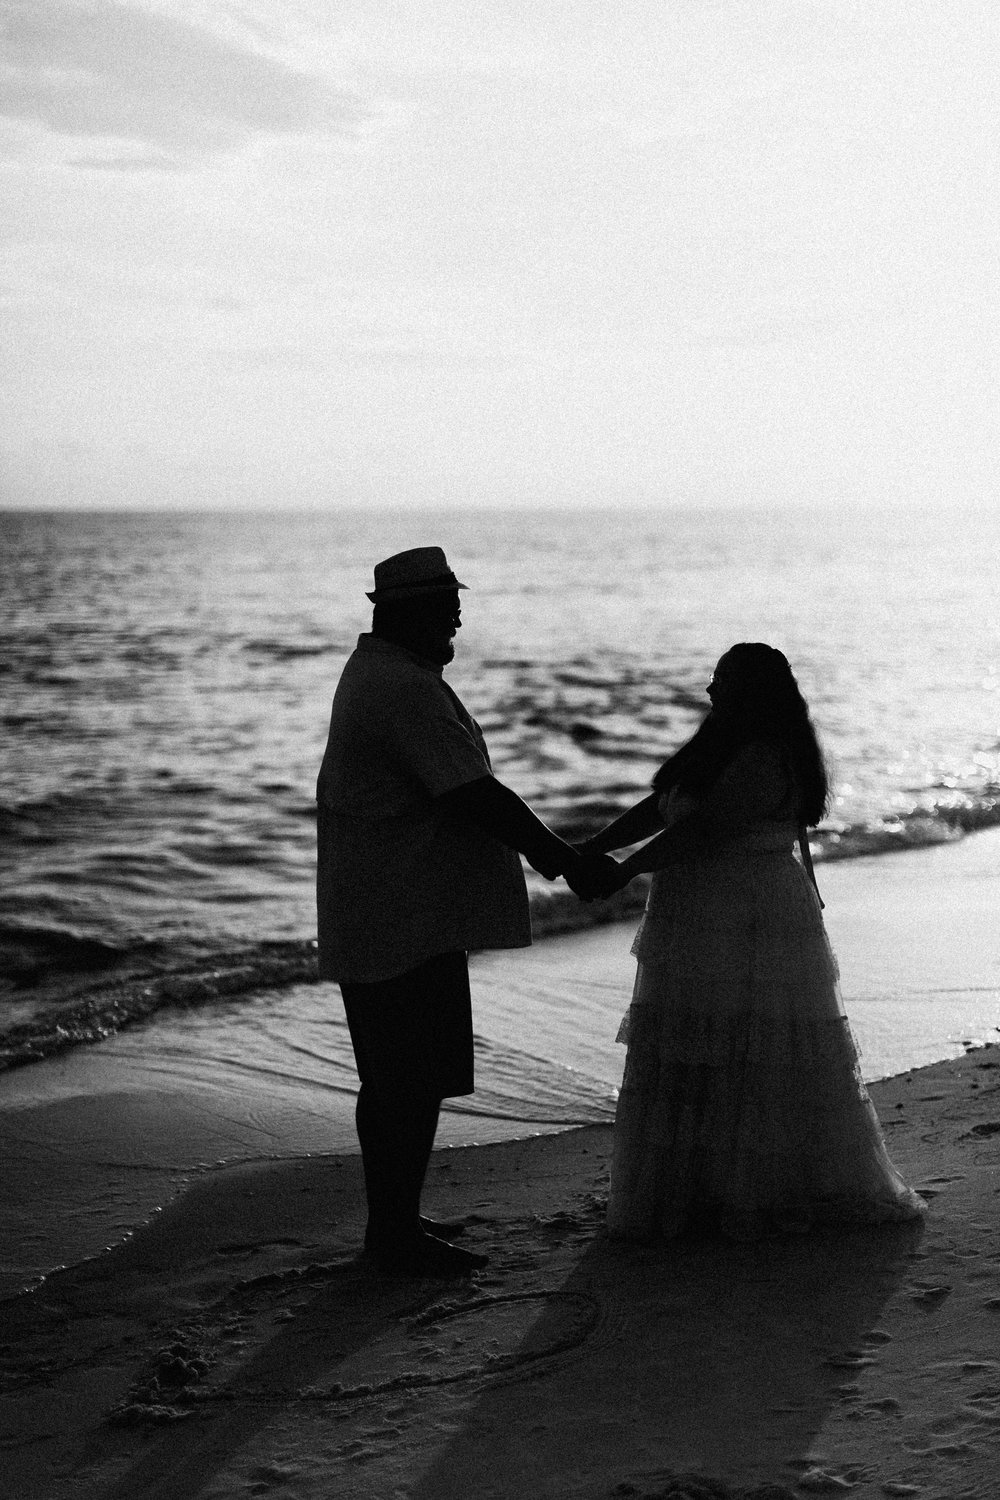 destin_sunset_beach_elopement_intimate_wedding_photographer_florida_documentary_1283.jpg